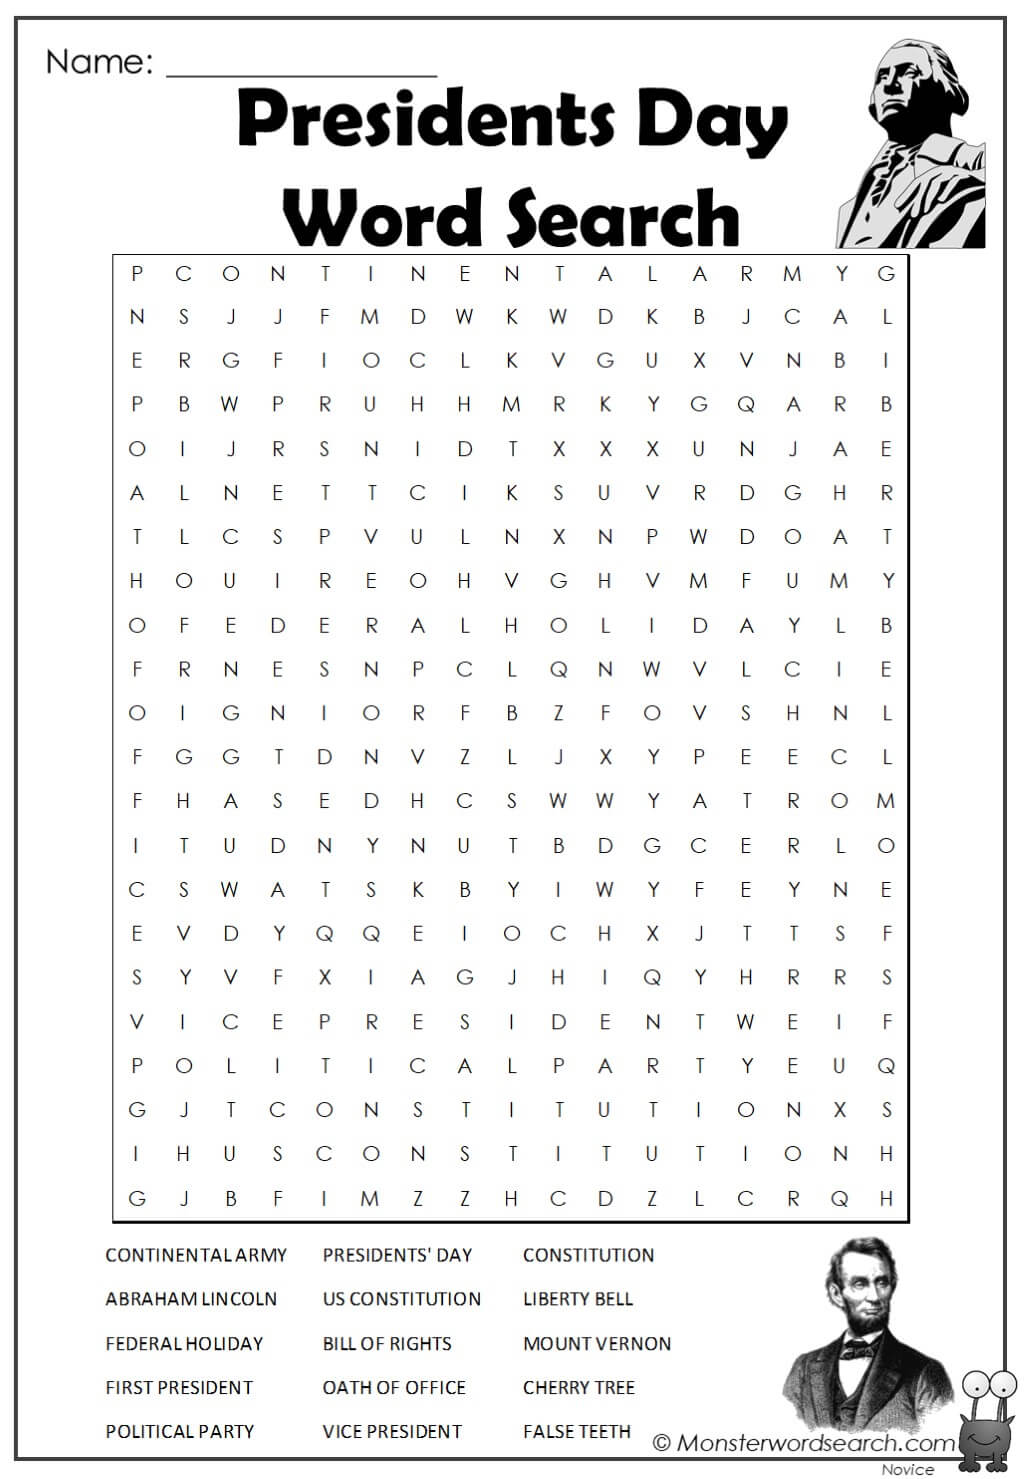 Presidents Day Word Search 1